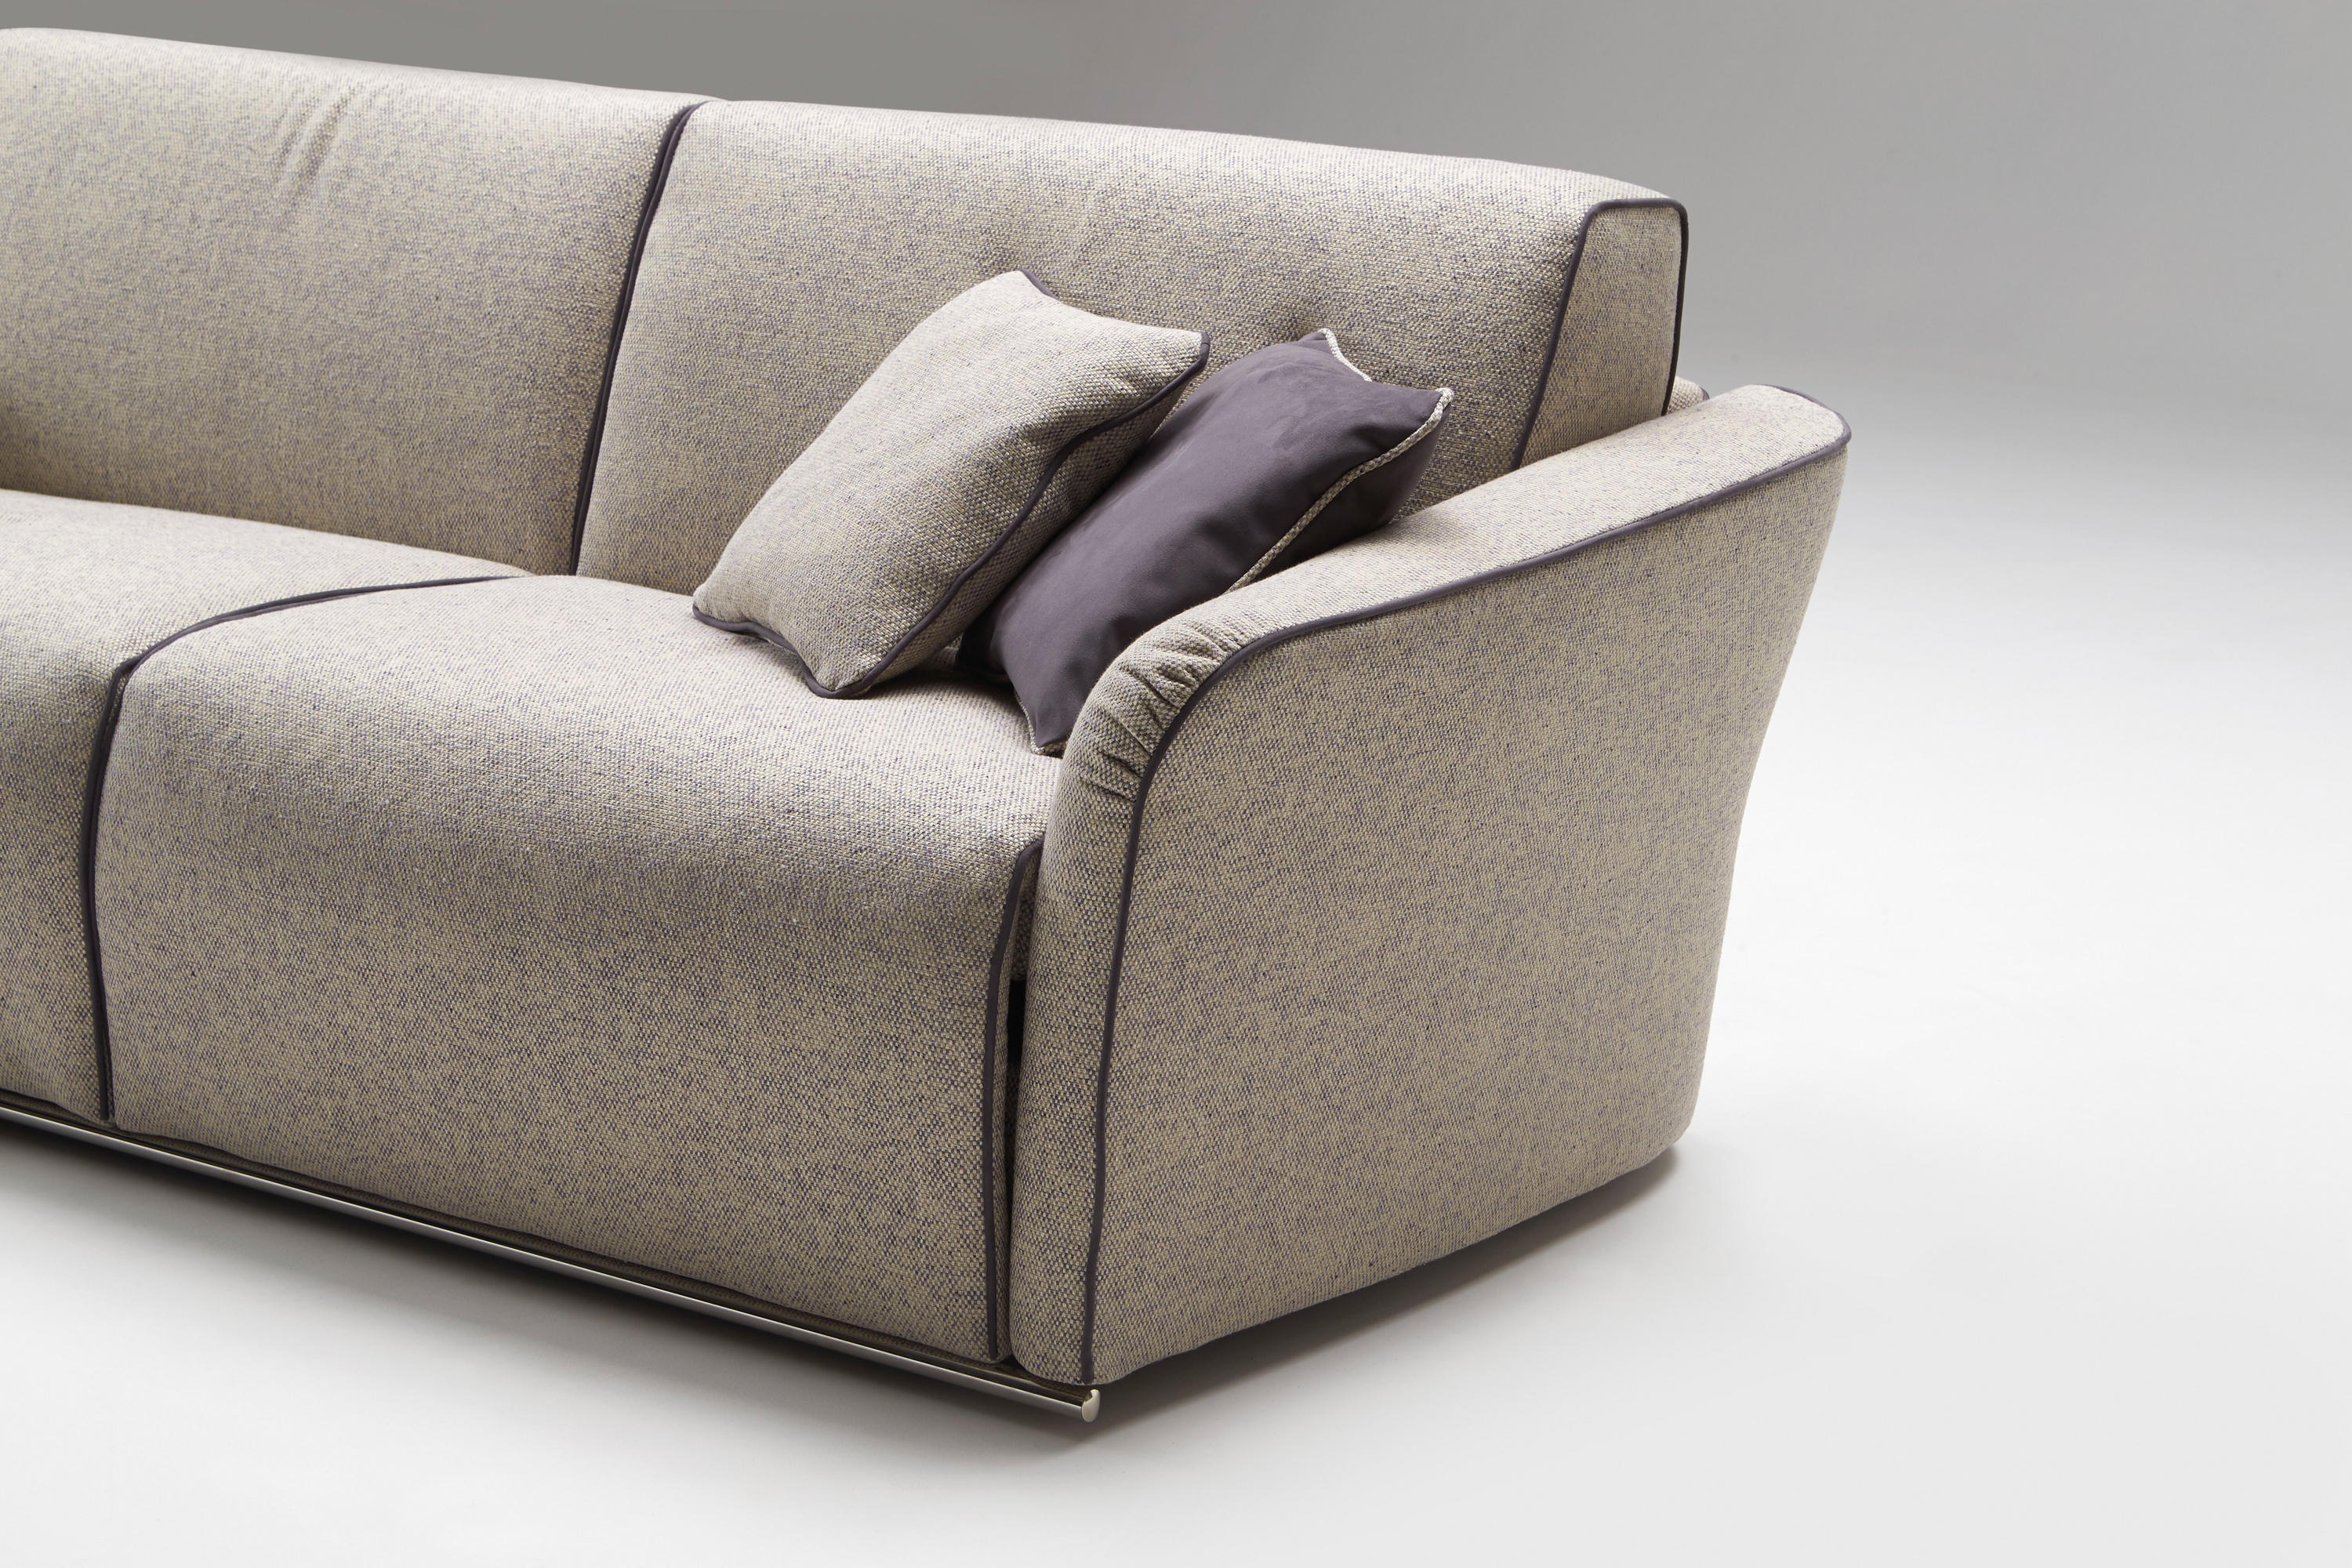 Groove sofa beds from milano bedding architonic for Milano bedding